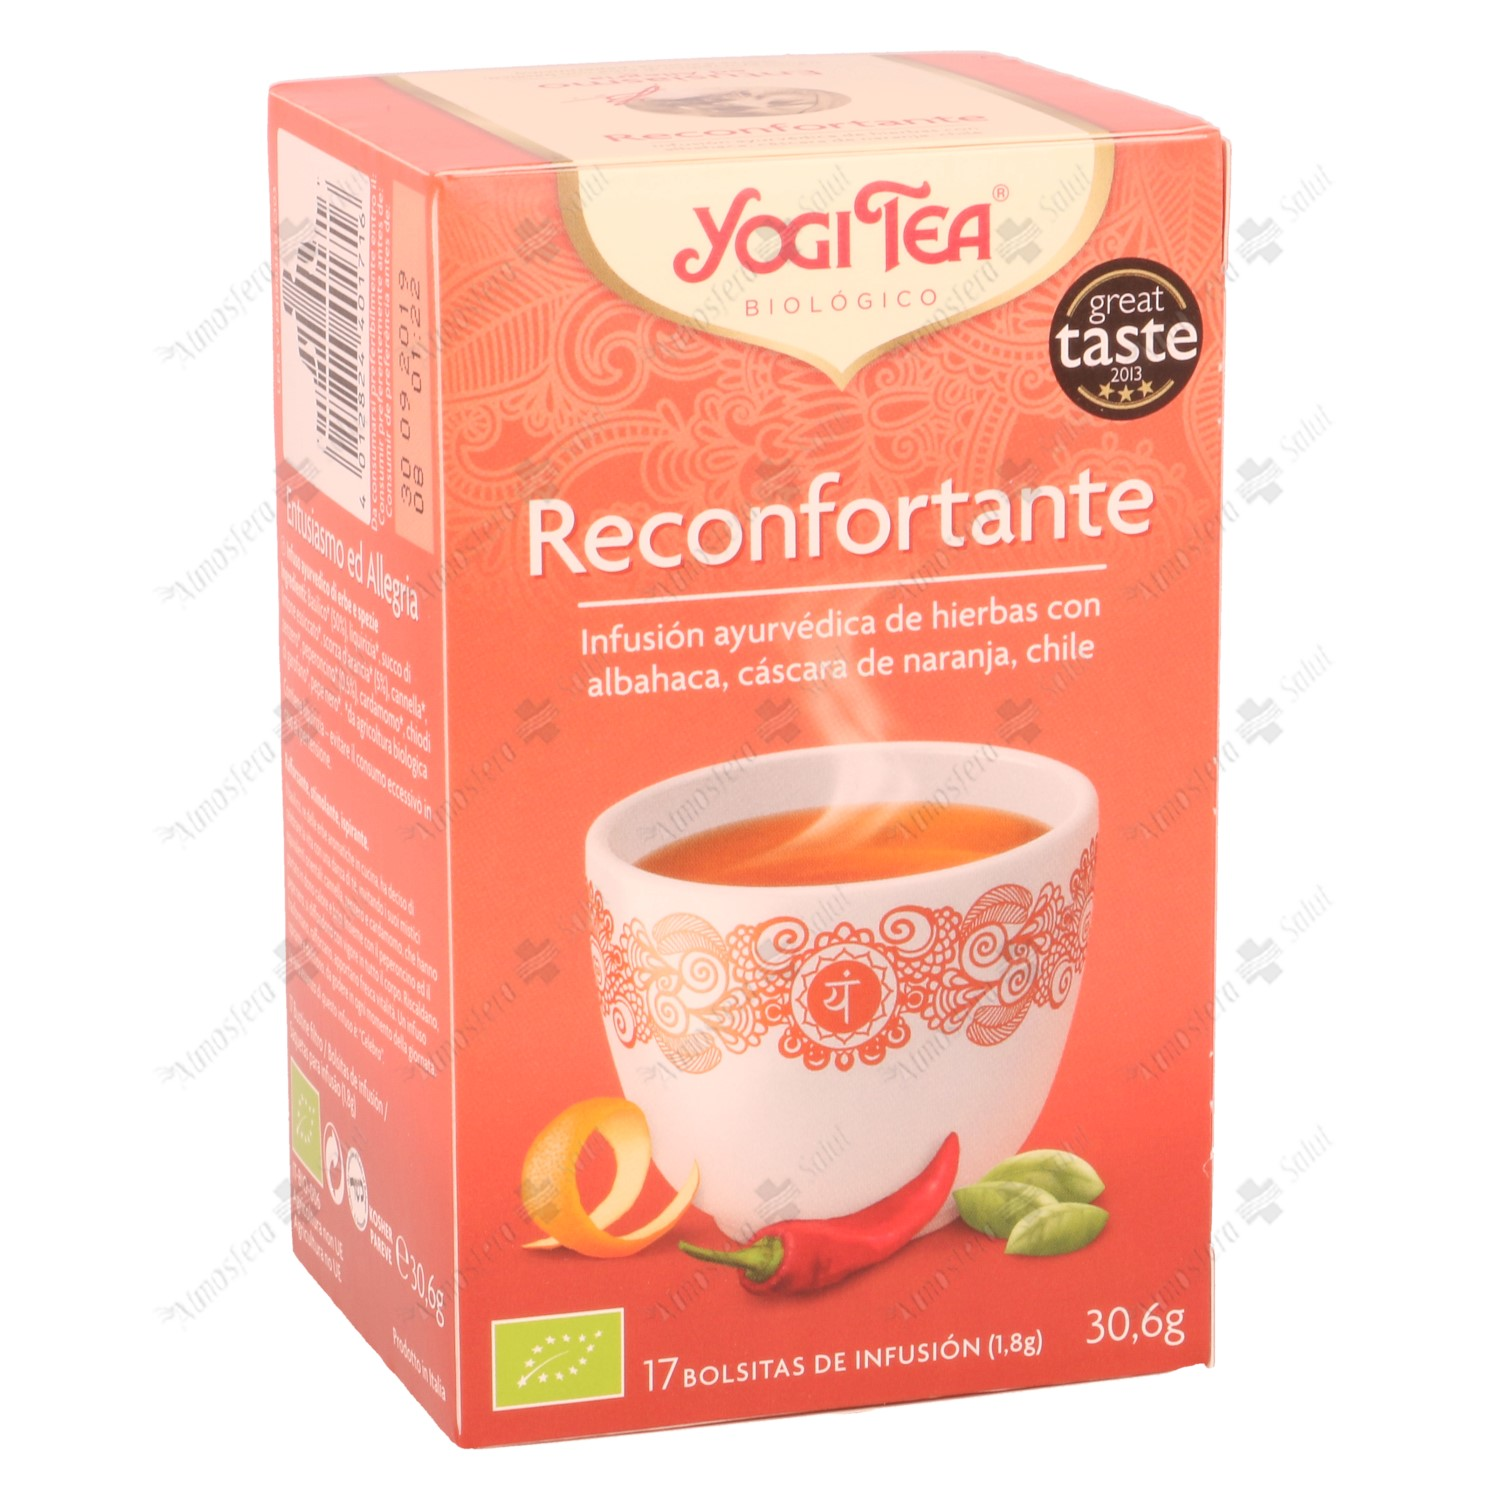 YOGI TEA RECONFORTANTE 17 B. 30,6 GR